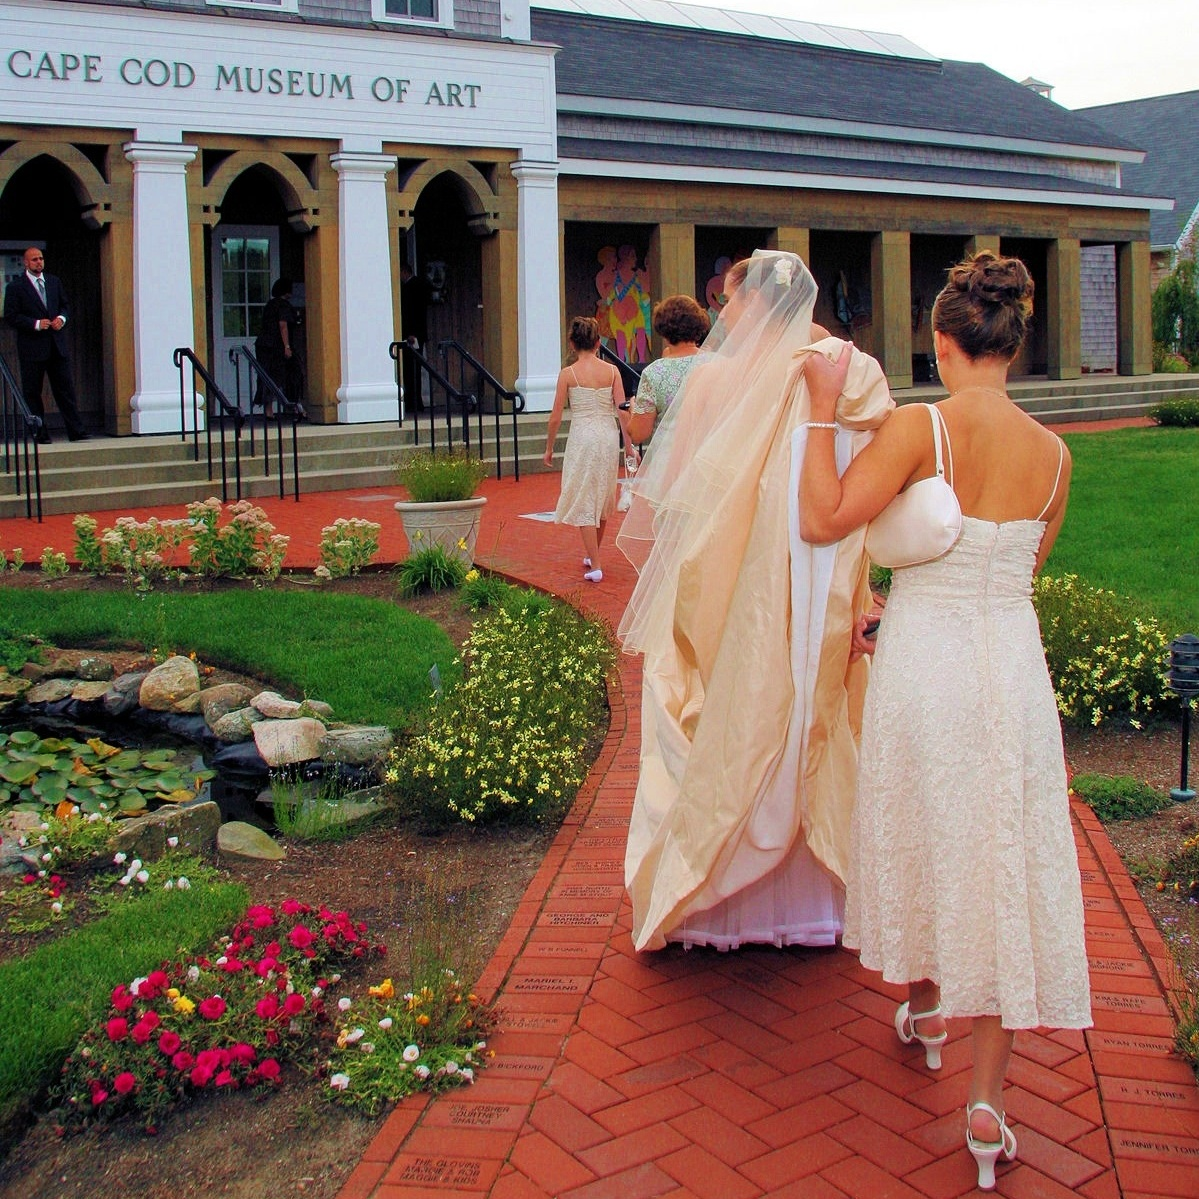 Six elegant art galleries provide an exquisite setting for memorable holiday parties or personal receptions.